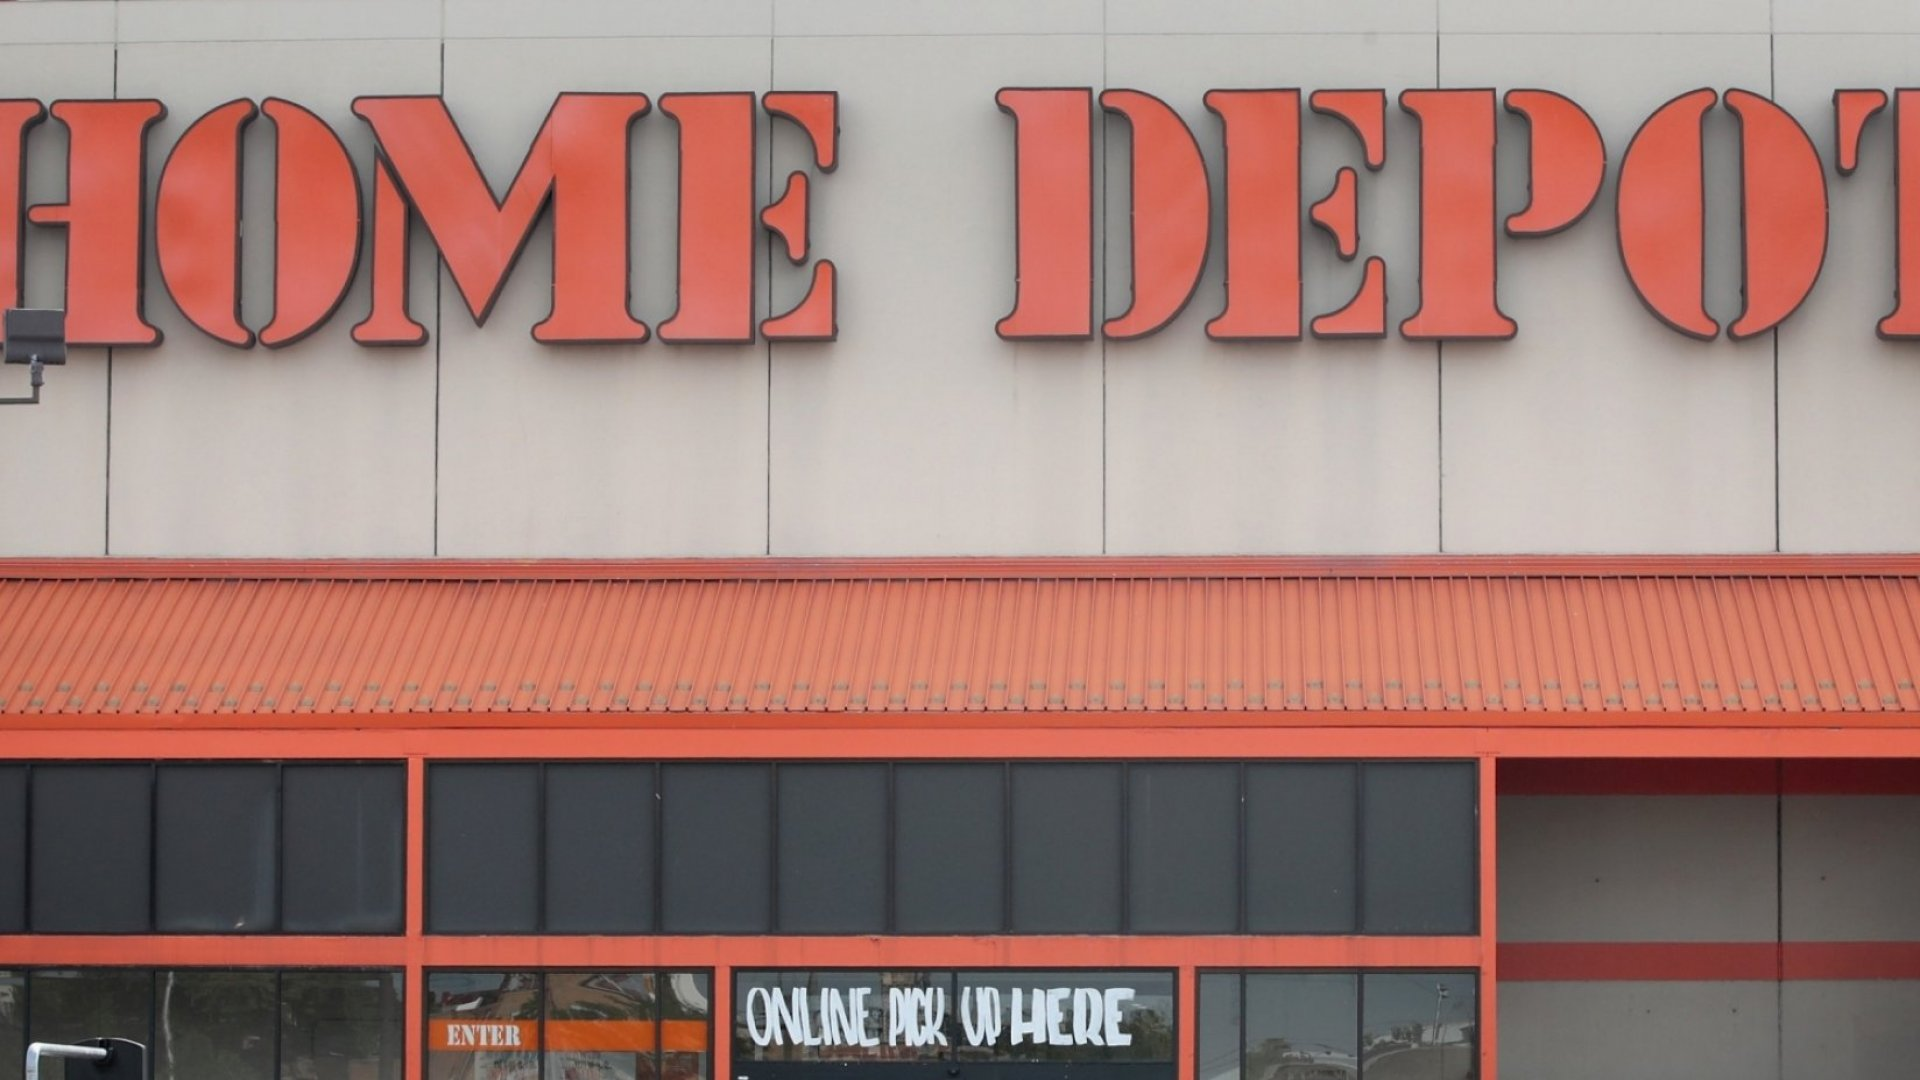 A Couple Walked Into Home Depot. What Happened Next Wasn't the Sort of Customer Service They'd Expected